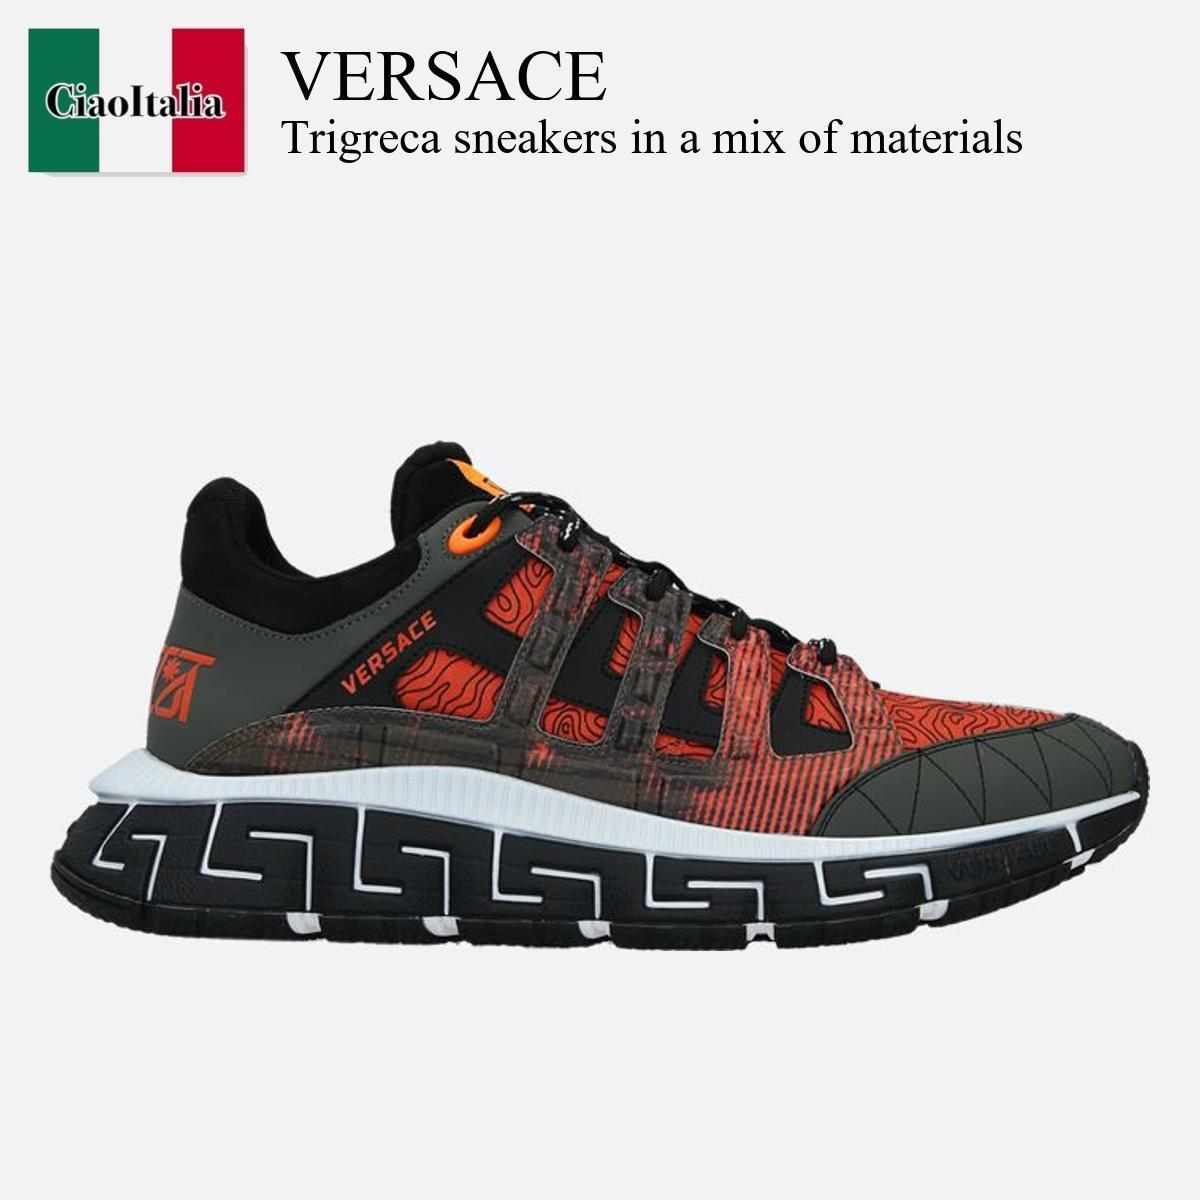 Versace Trigreca sneakers in a mix of materials (VERSACE/スニーカー) TRIGRECA SNEAKERS IN A MIX OF MATERIALS  DSU809 4D17TC  DSU809 4D17TC G6K0